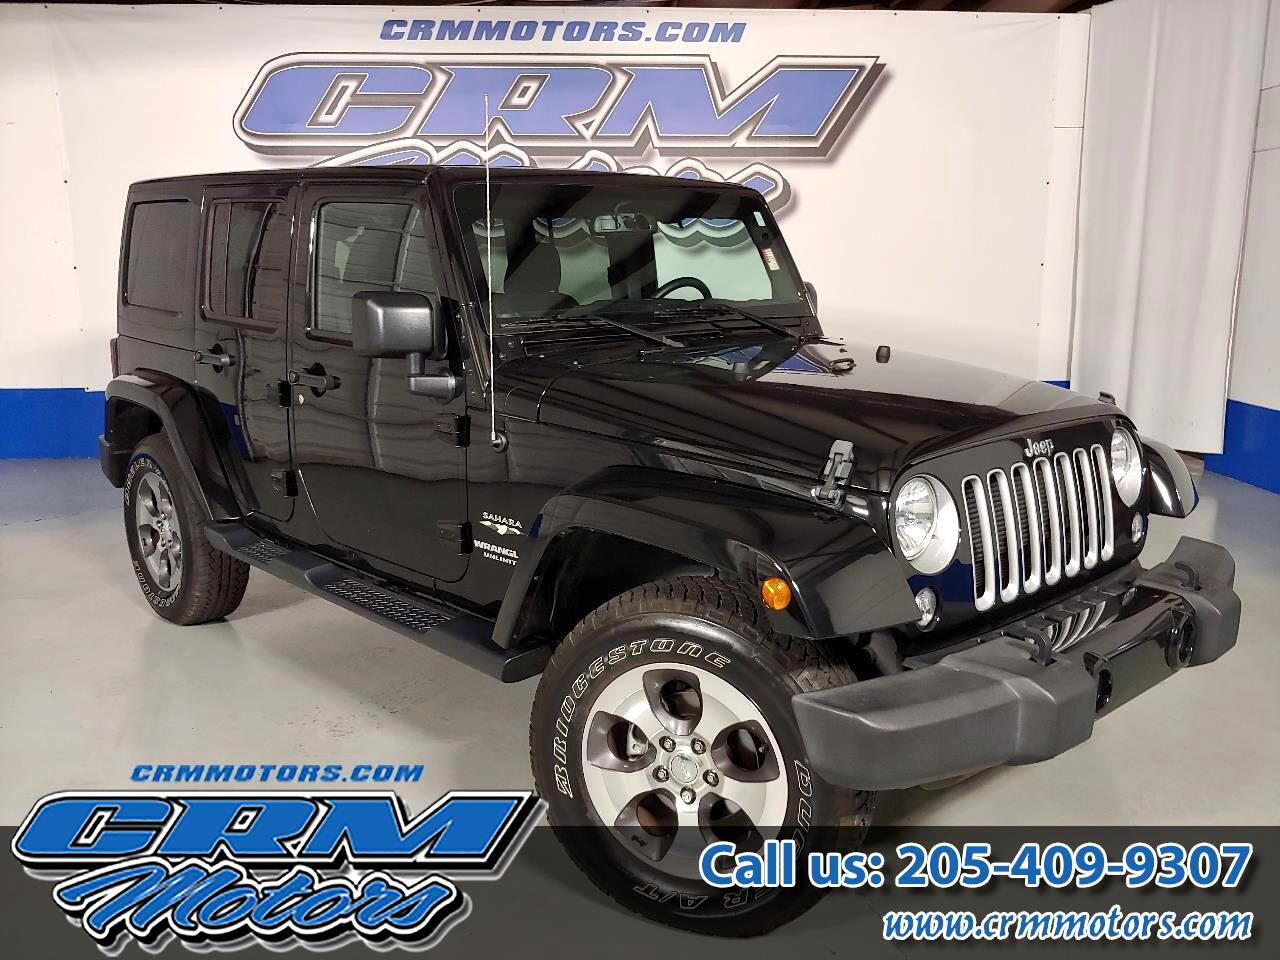 2016 Jeep Wrangler Unlimited 4WD, SAHARA, BLACK HARD TOP, BEAUTIFUL!